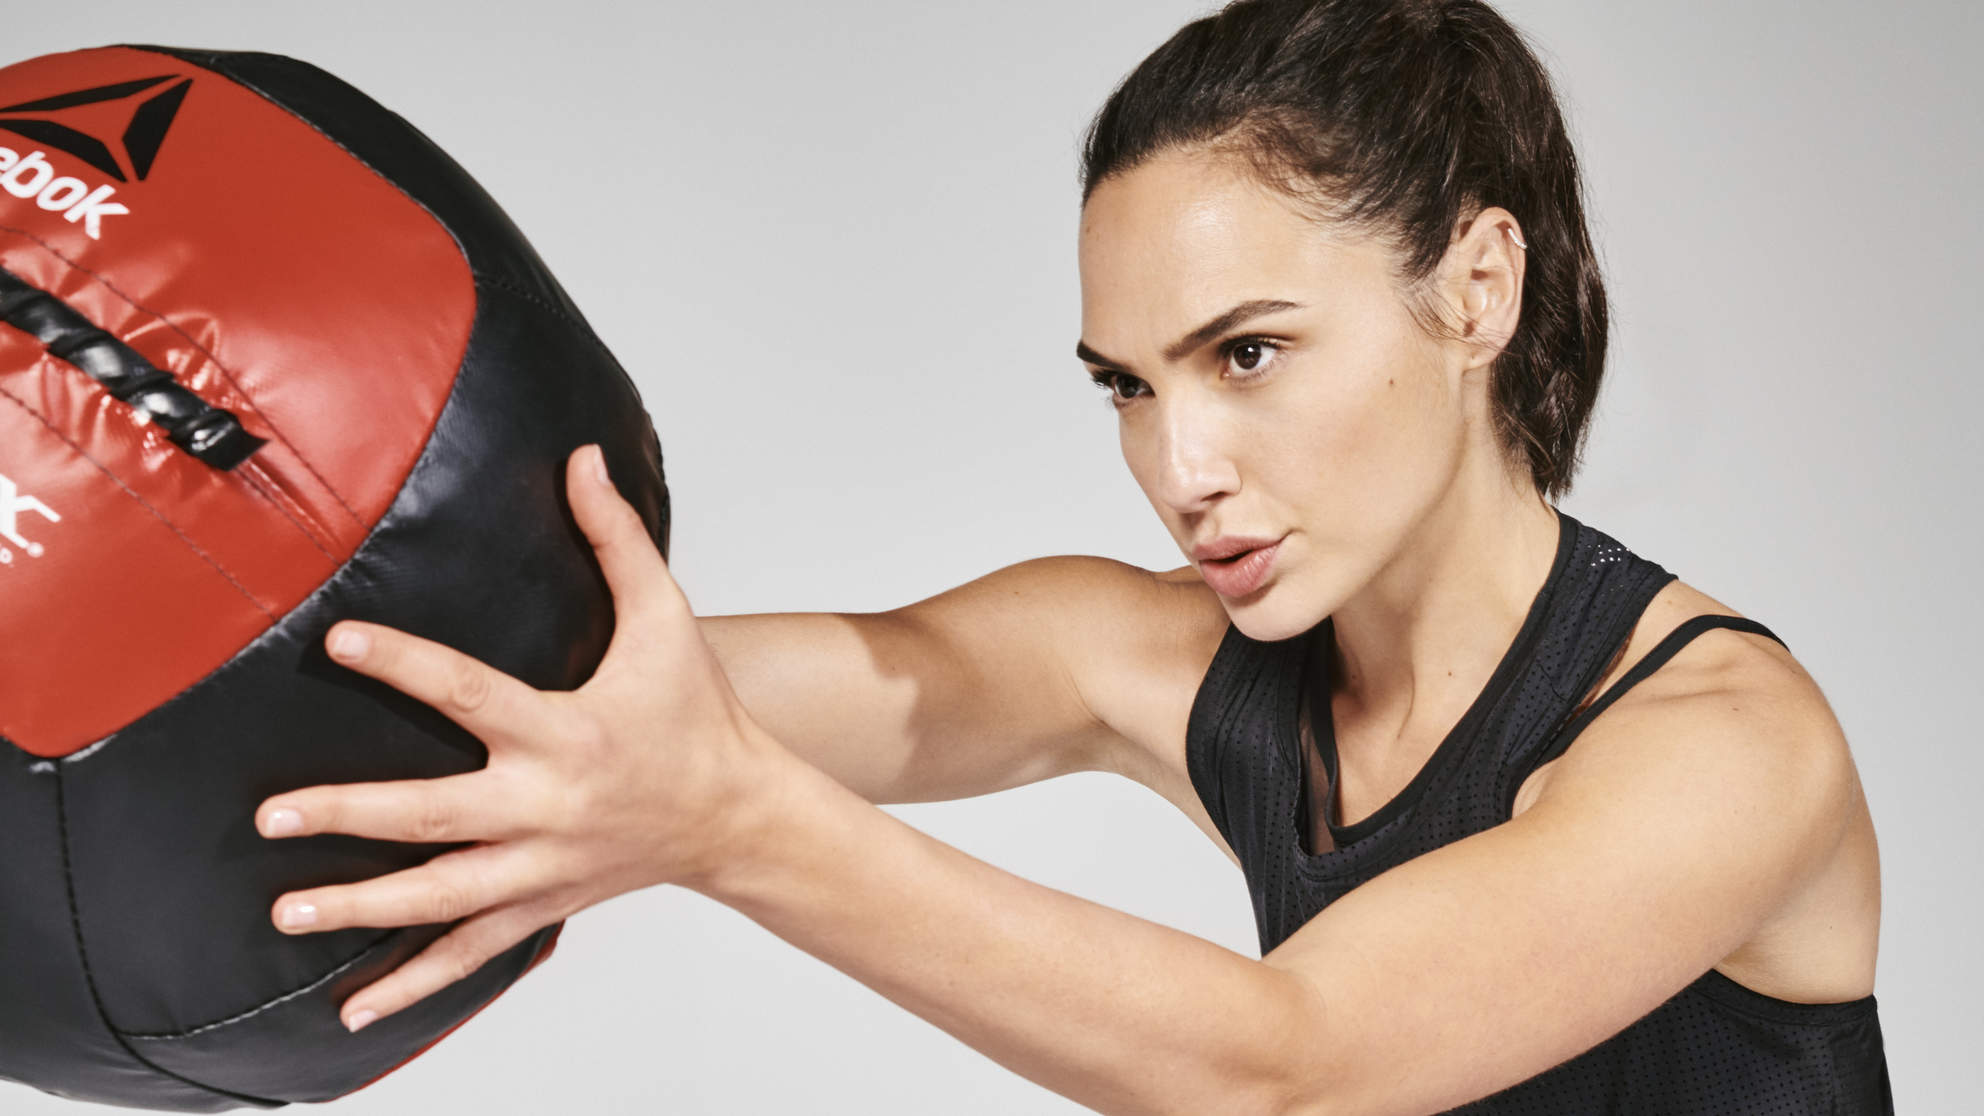 Gal Gadot medicine ball Reebok Ambassador fitness exercise workout wonder woman